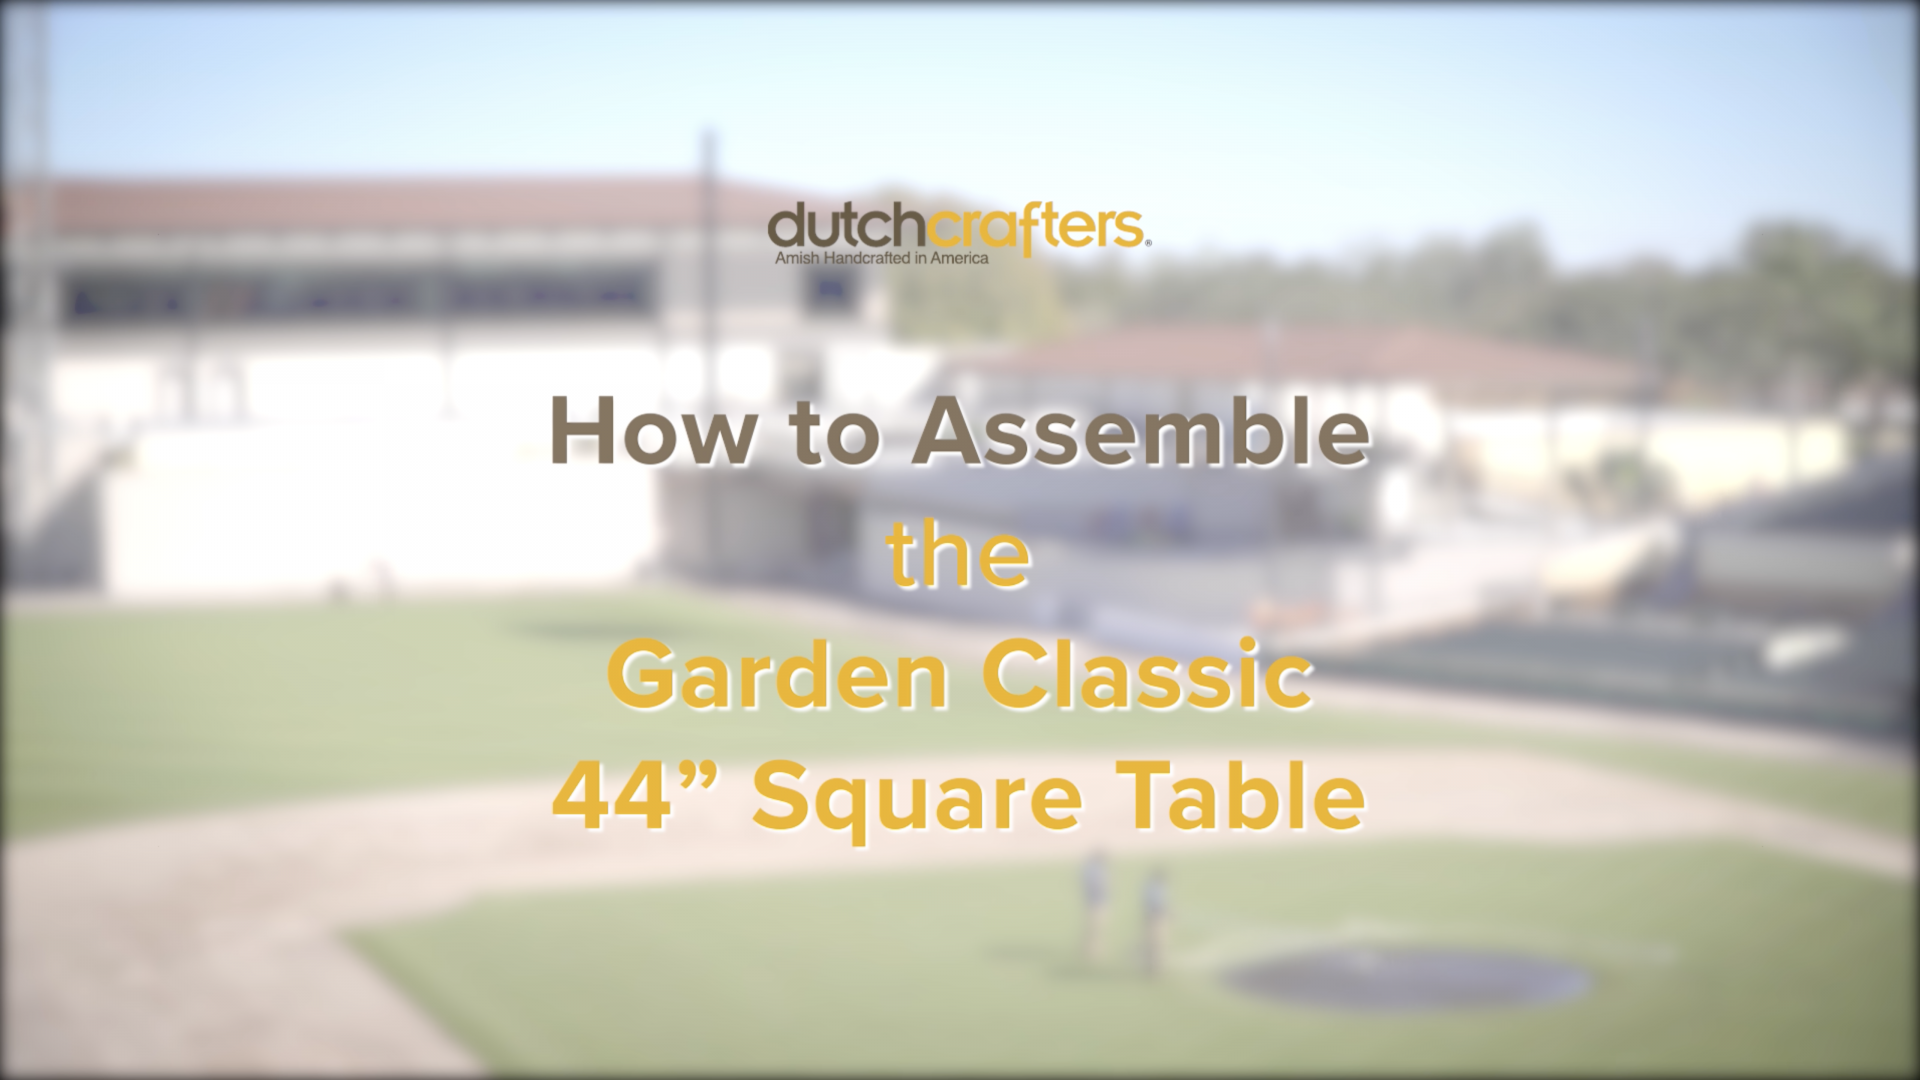 "How to Assemble the Garden Classic 44"" Square Table Video Title Screen"